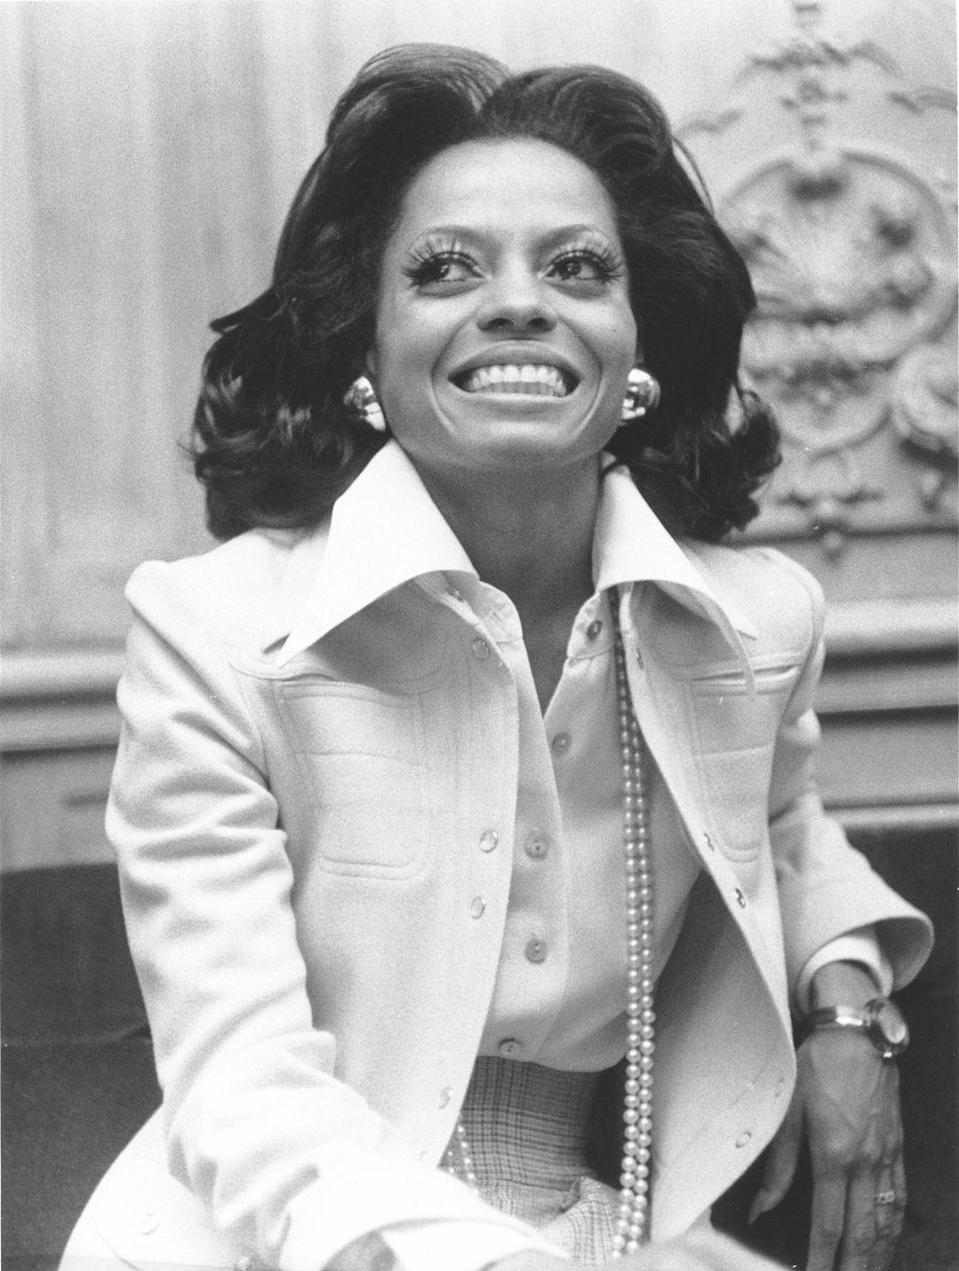 <p>After ending her on again, off again relationship with Berry Gordy, Diana Ross married her music business manager Robert Ellis Silberstein on January 20, 1971.</p>